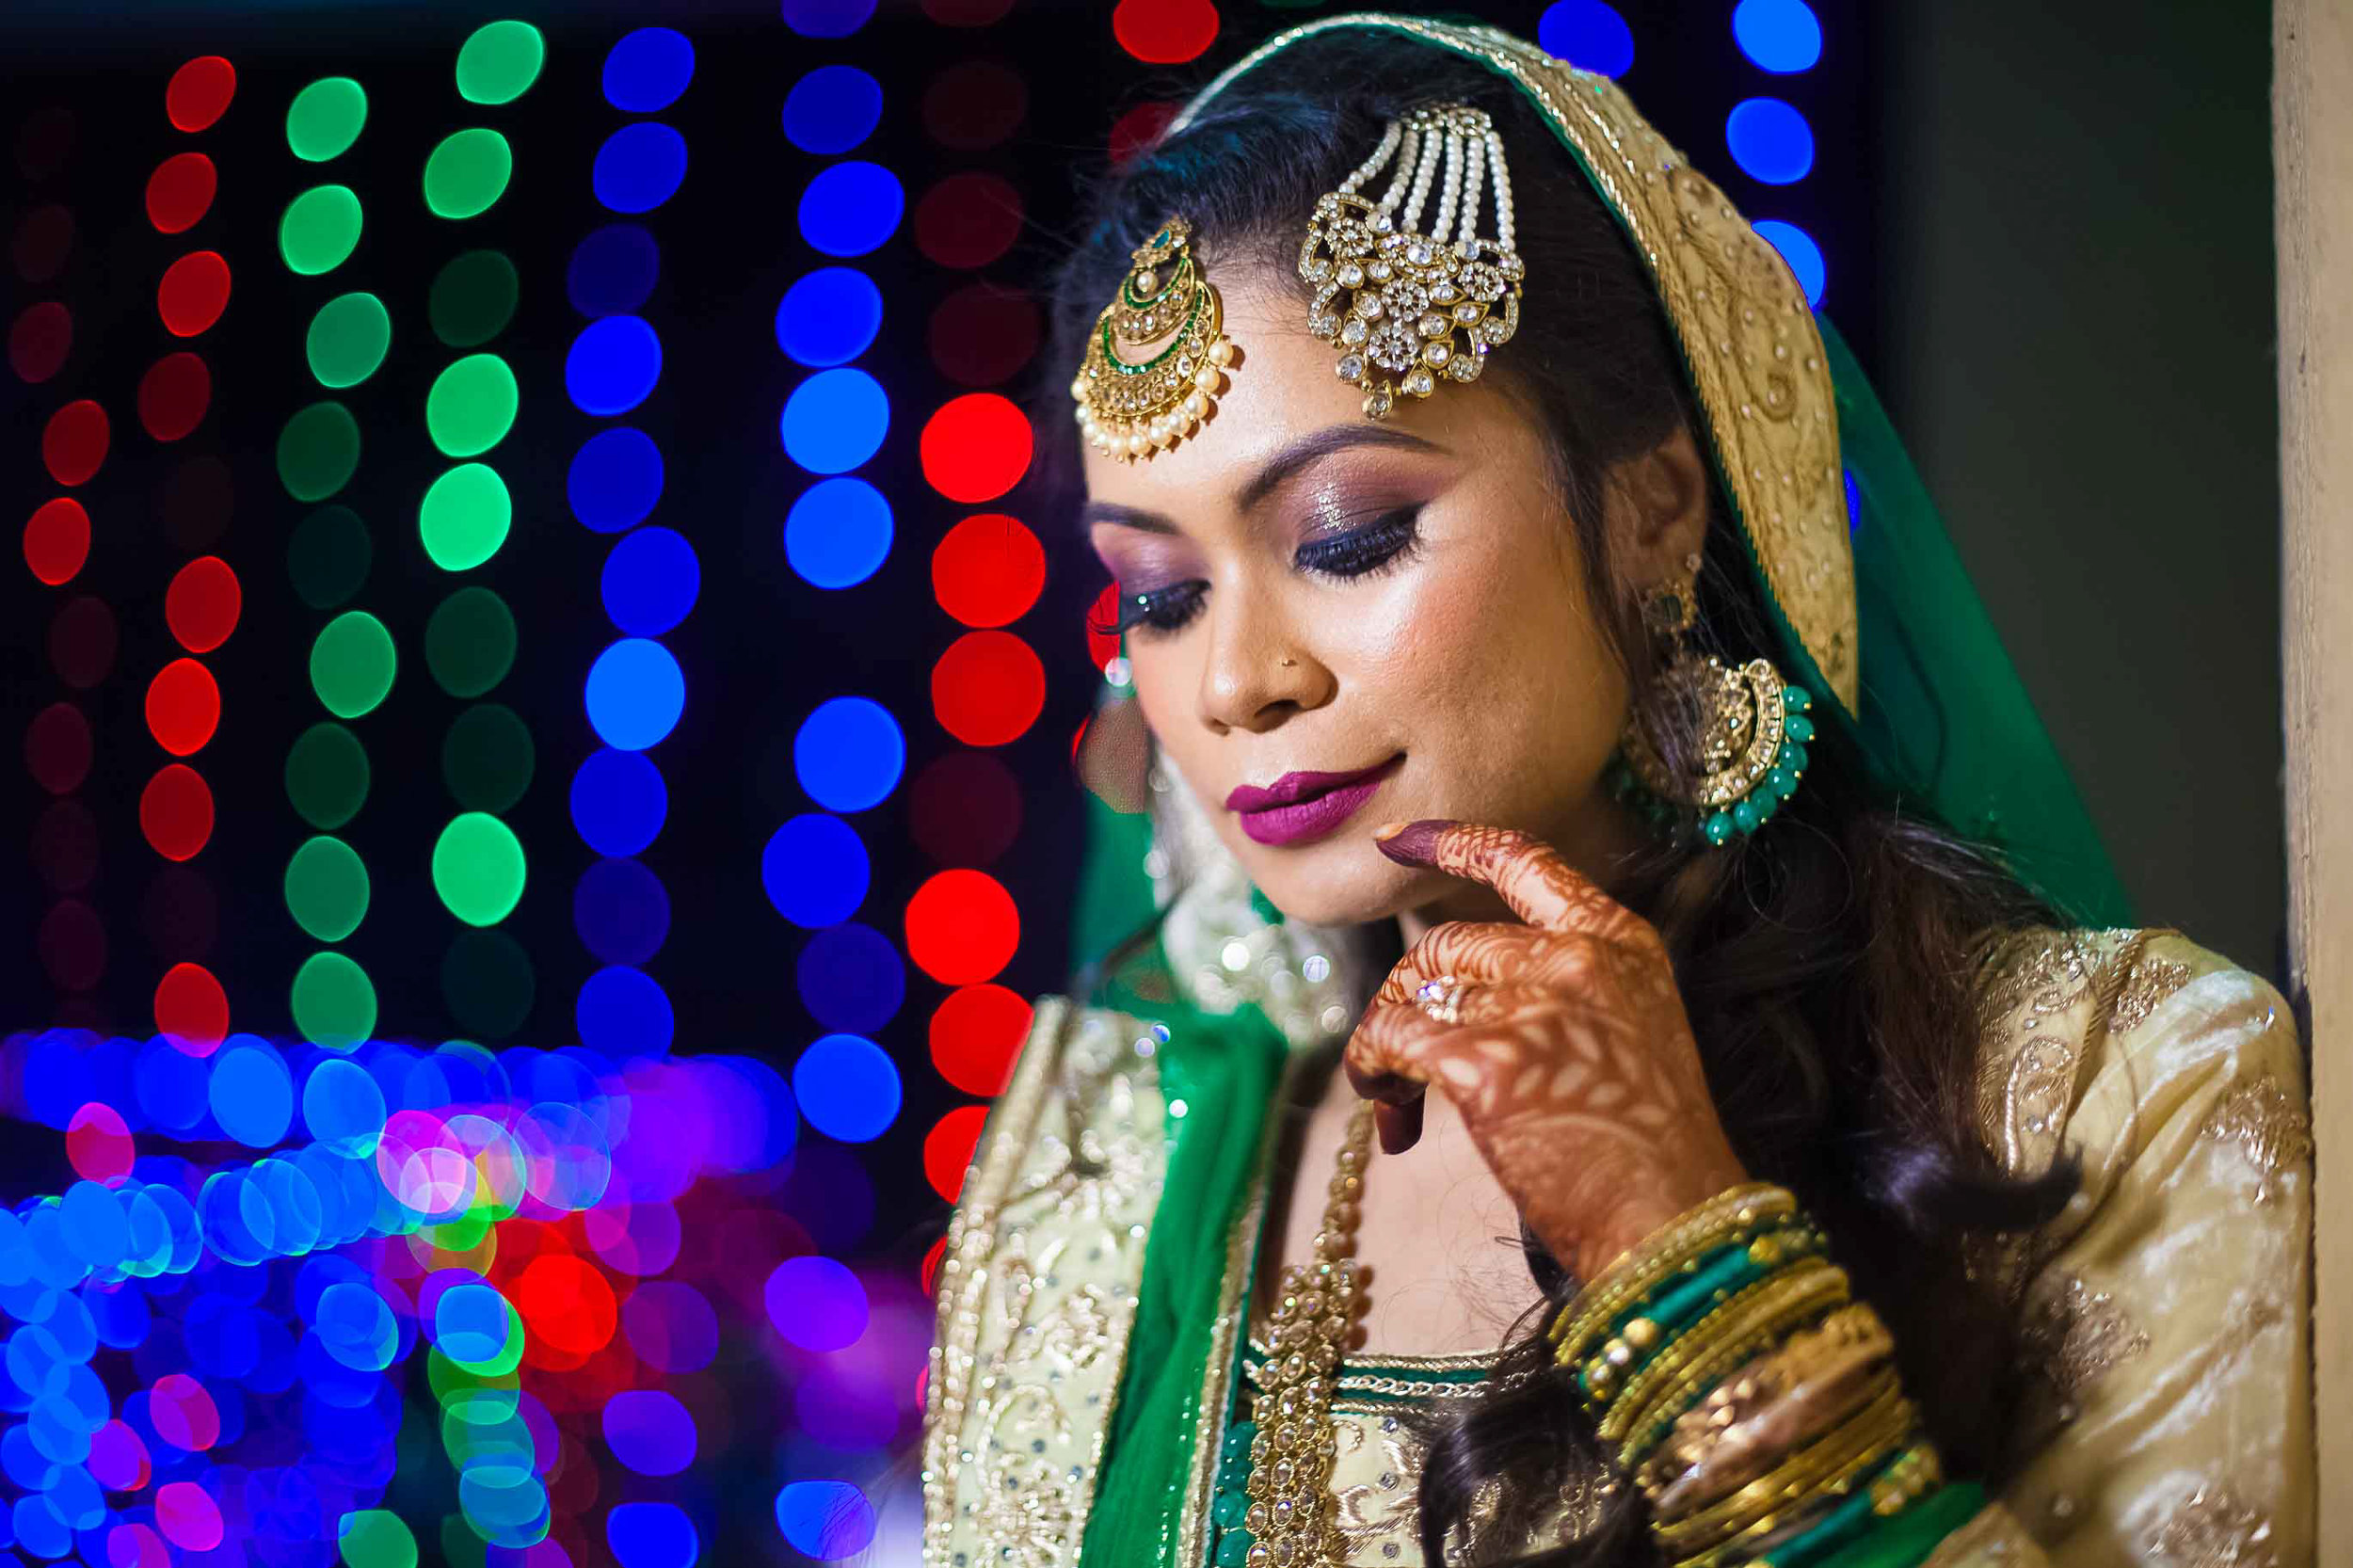 Pixel-Chronicles-Meraj-Yousuf-Candid-Wedding-Documentary-Photography-Beautiful-Bride-Portrait-Muslim-Wedding-15.jpg